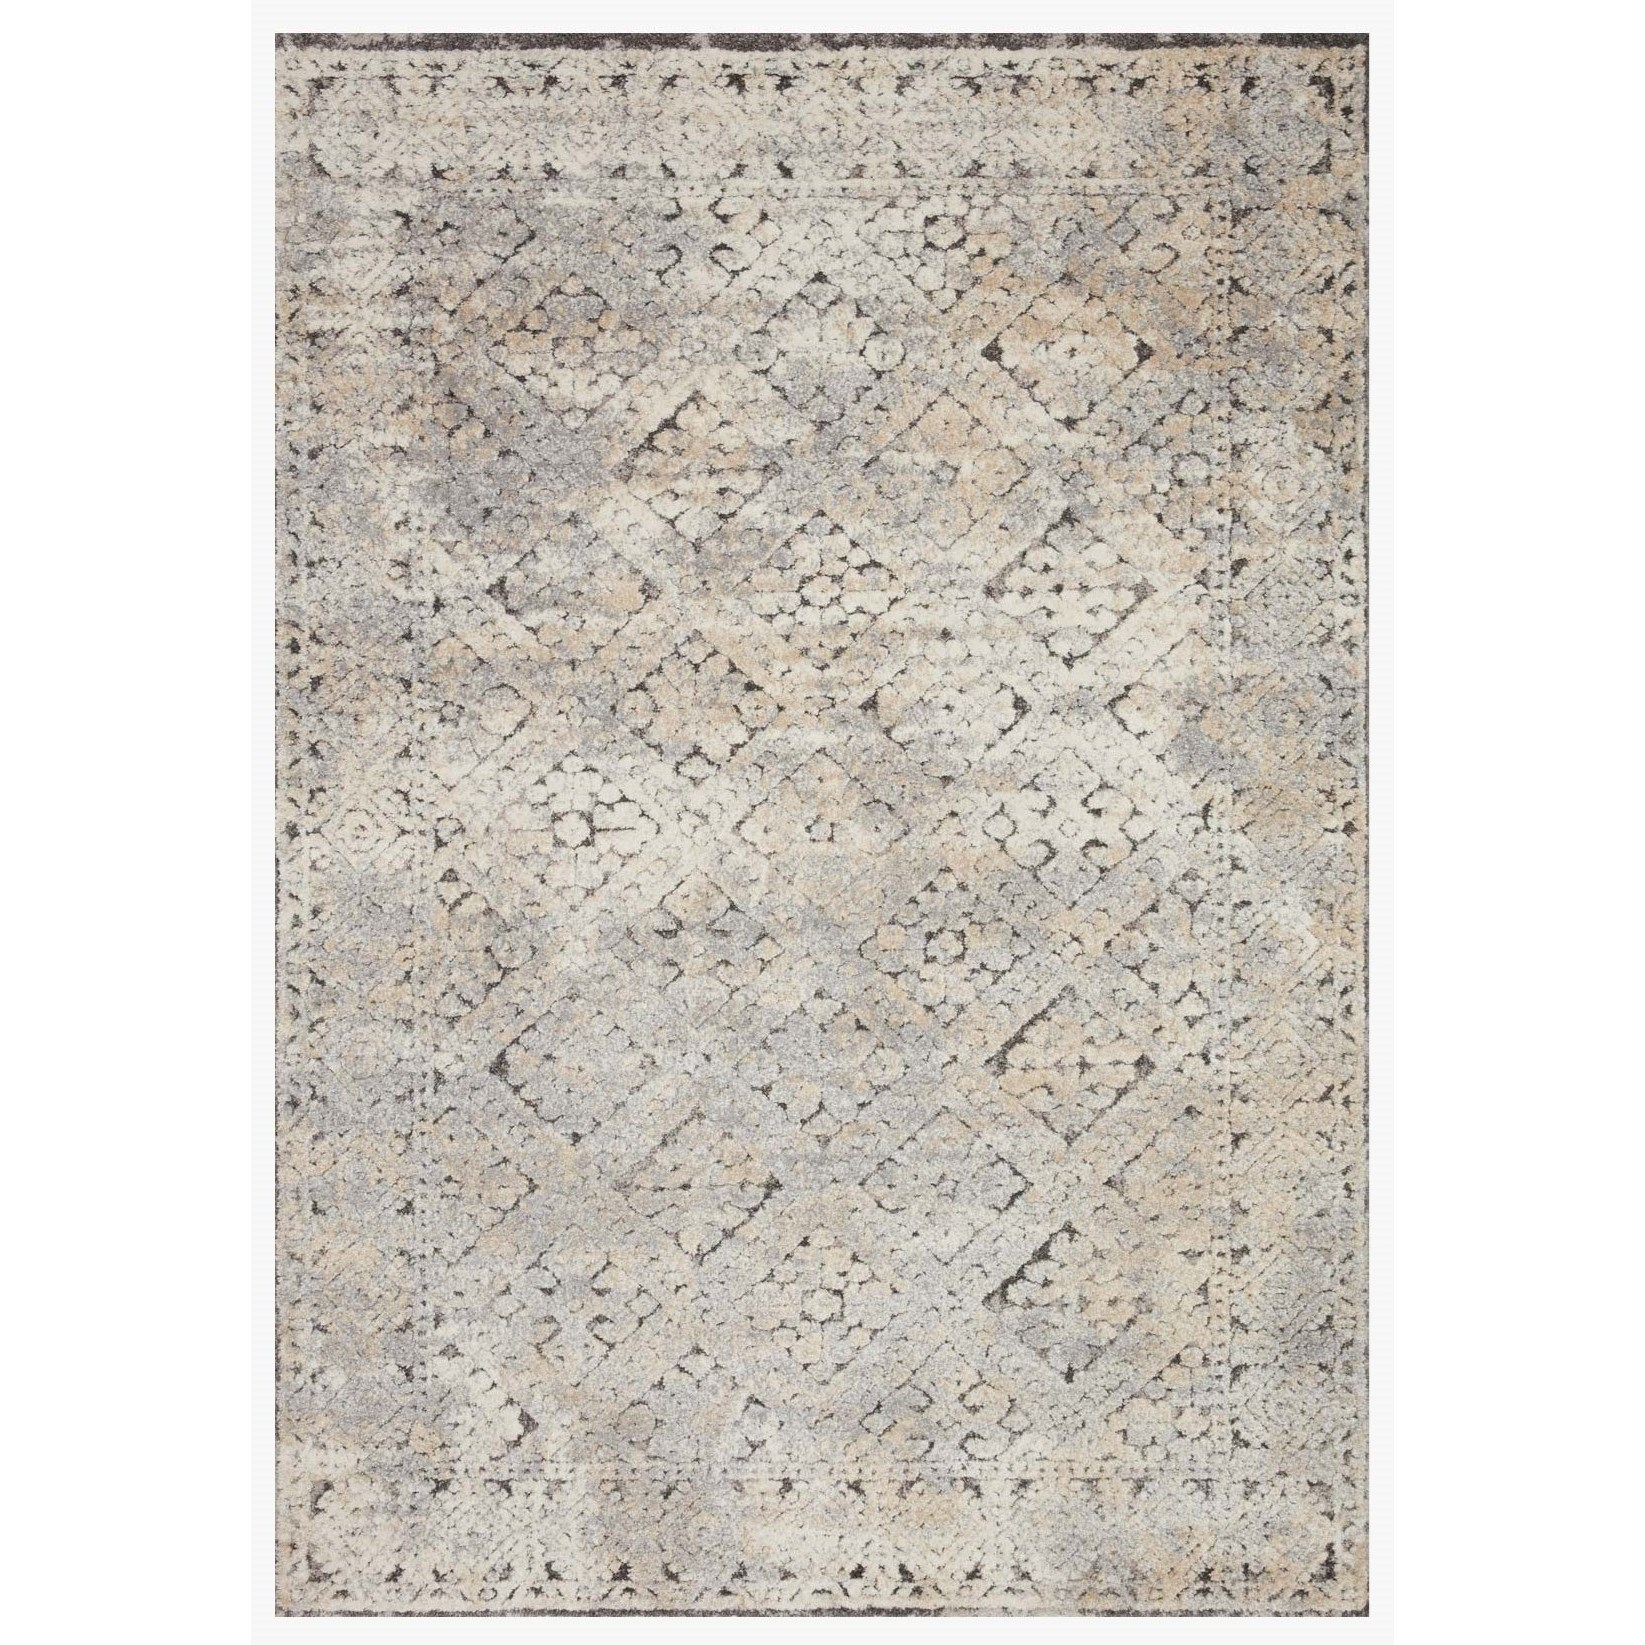 "Theory 2'7"" x 13' Grey / Sand Rug by Loloi Rugs at Virginia Furniture Market"